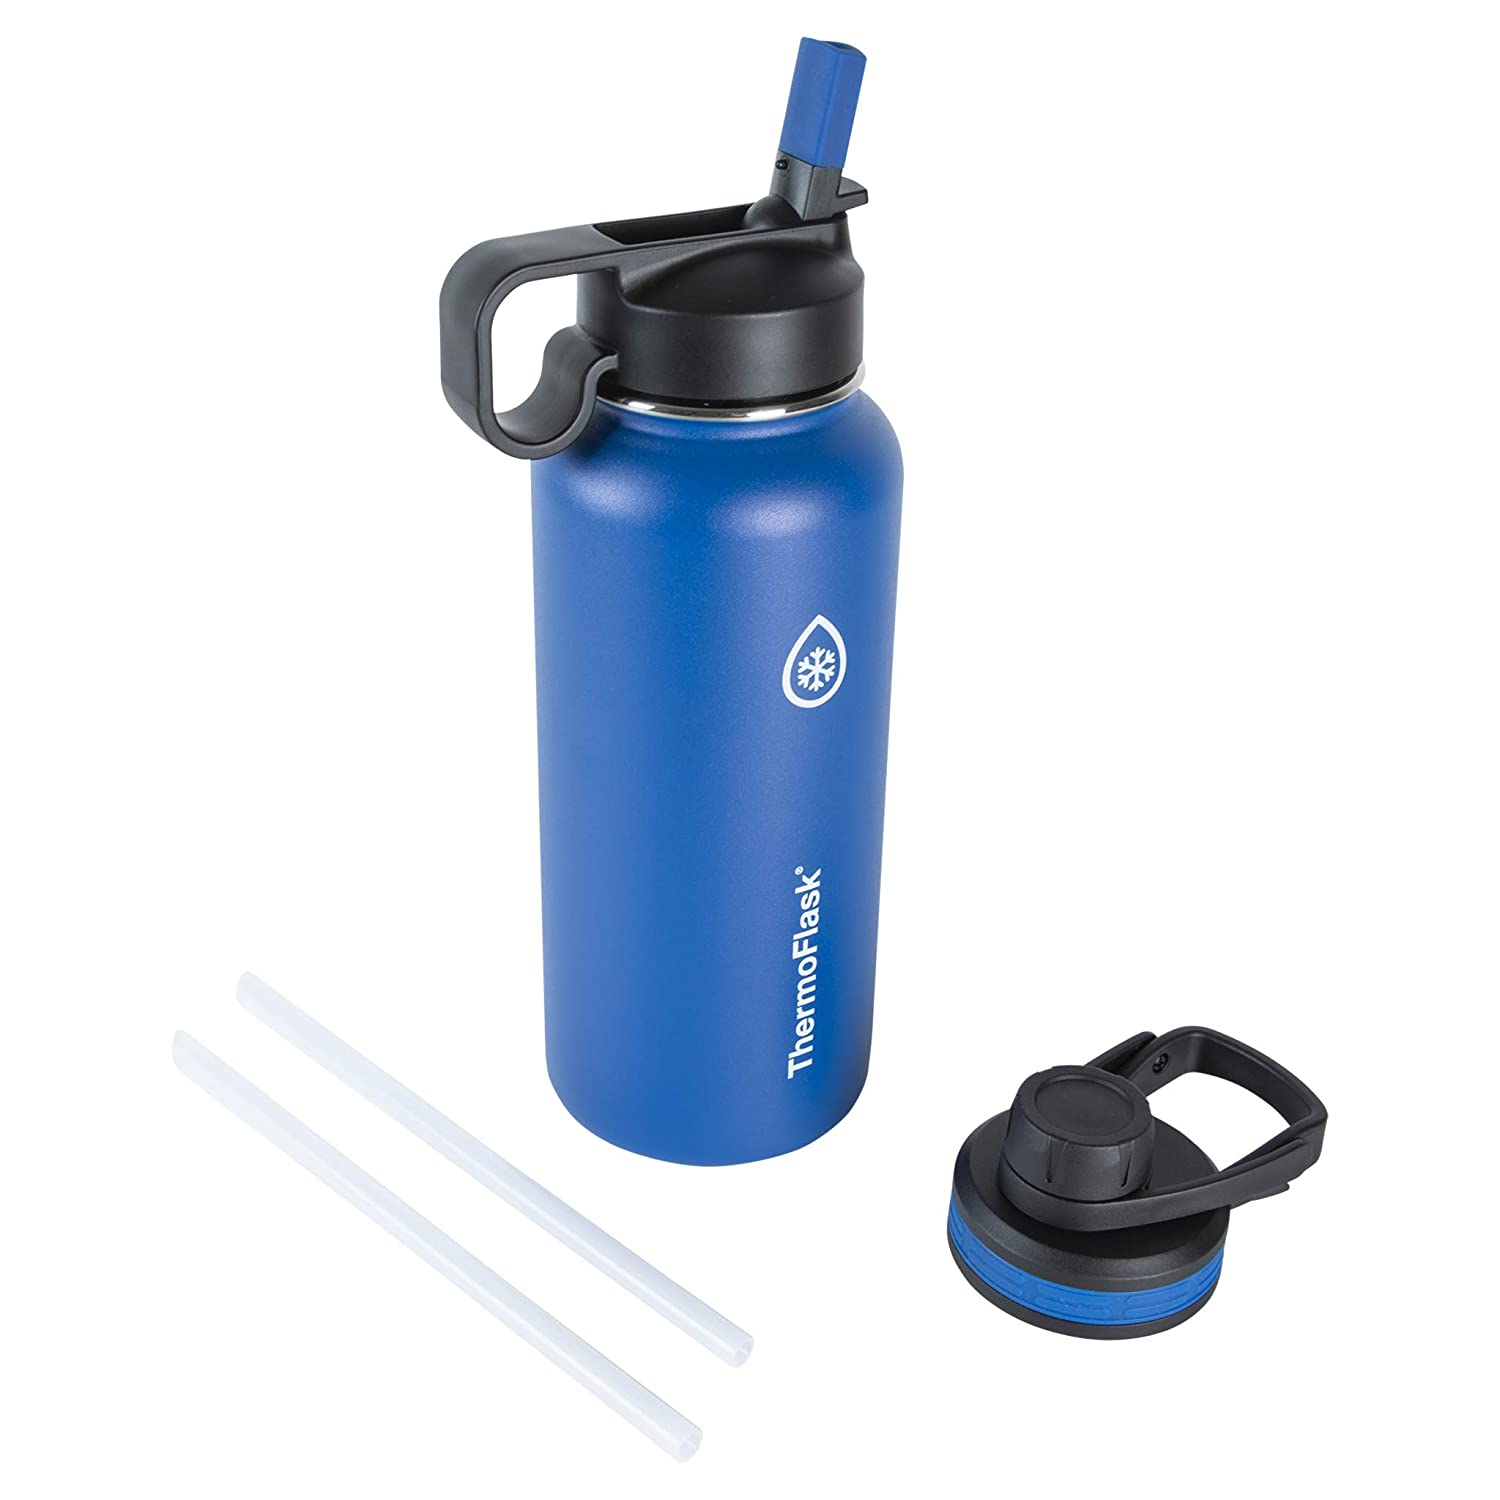 Thermoflask 50072 Double Stainless Steel Insulated Water Bottle, 32 oz, Cobalt